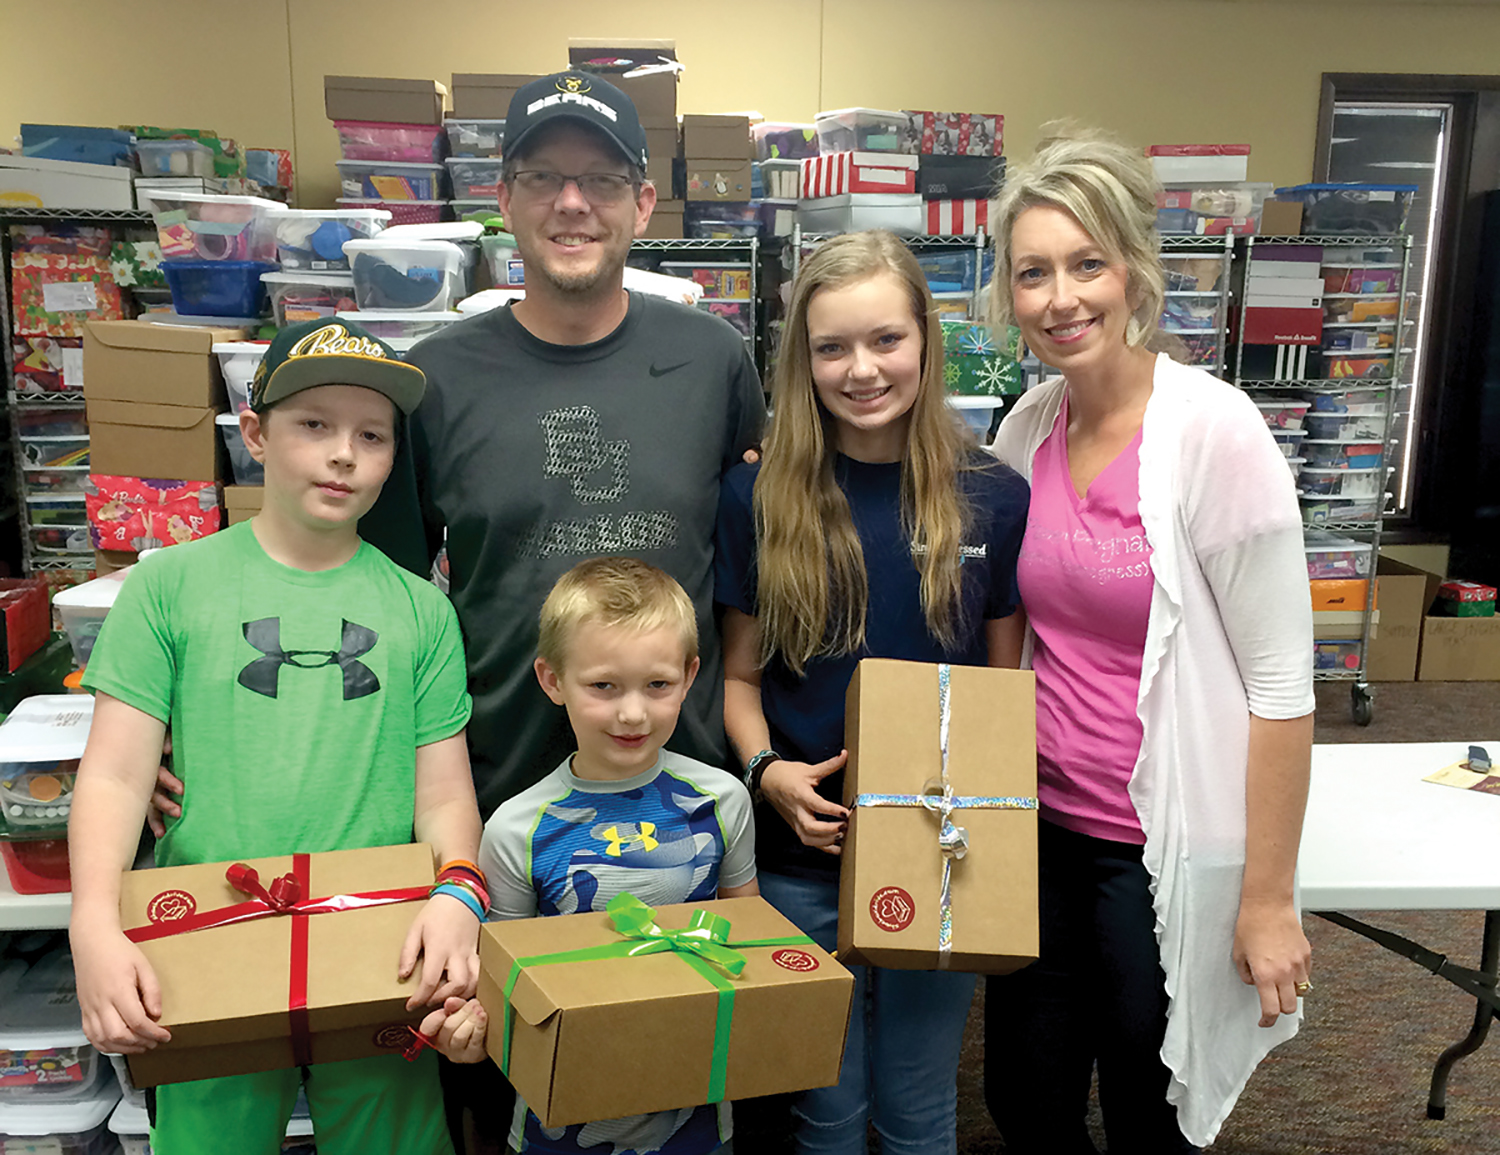 The Butler family from Texas was on vacation in Orlando, and spent a day helping process shoeboxes.